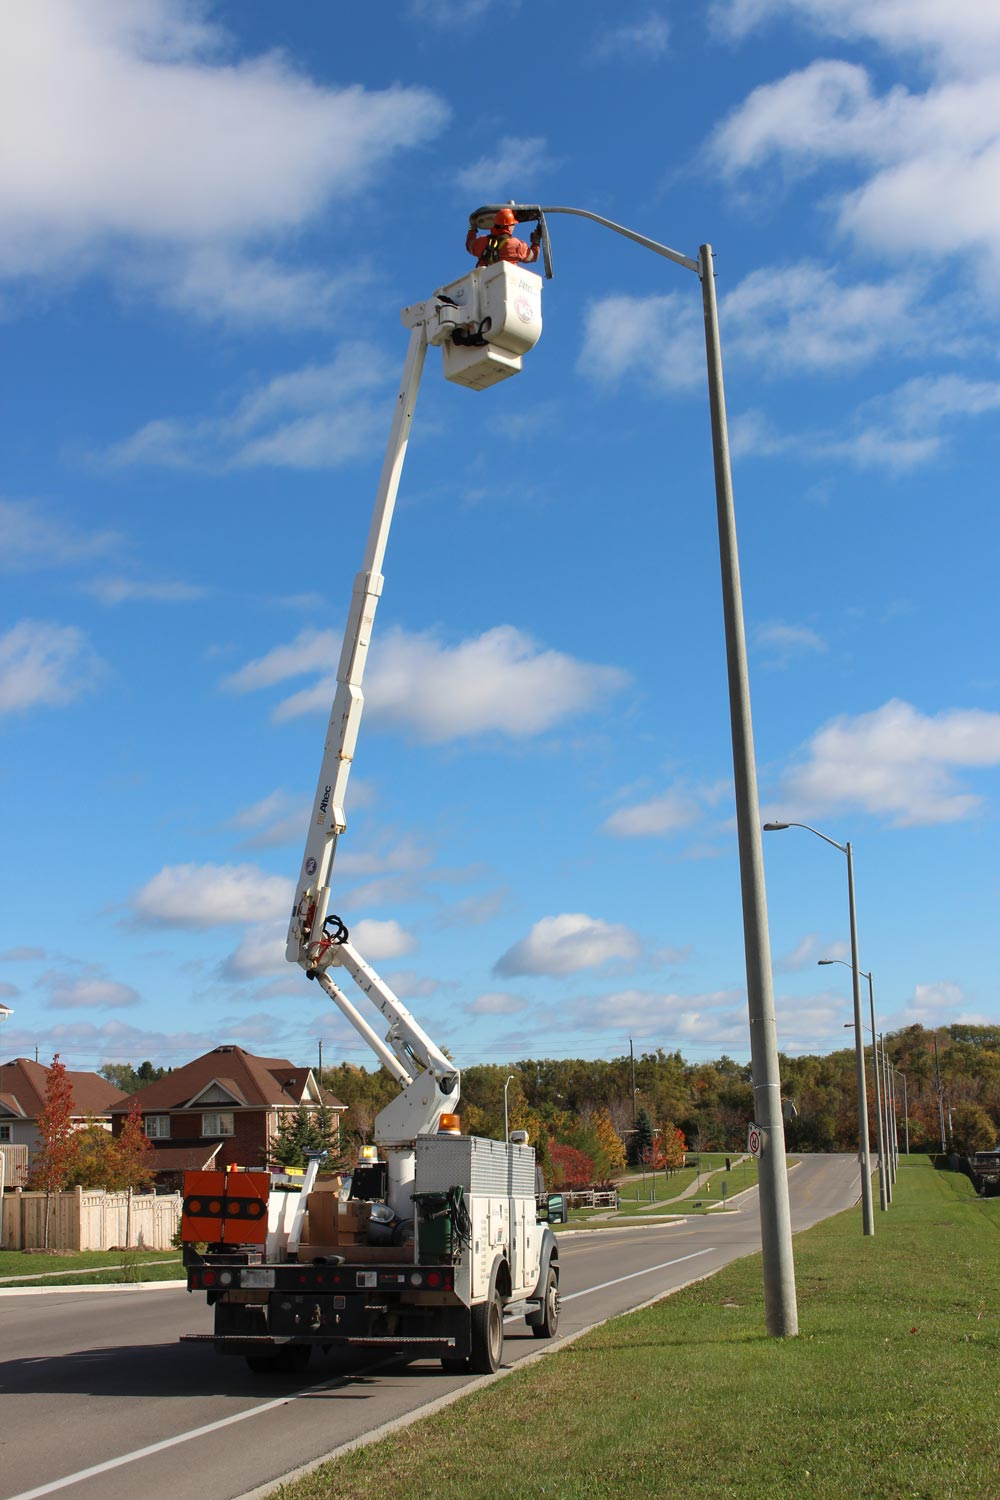 Work has begun on the installation of led lights across the city the multi